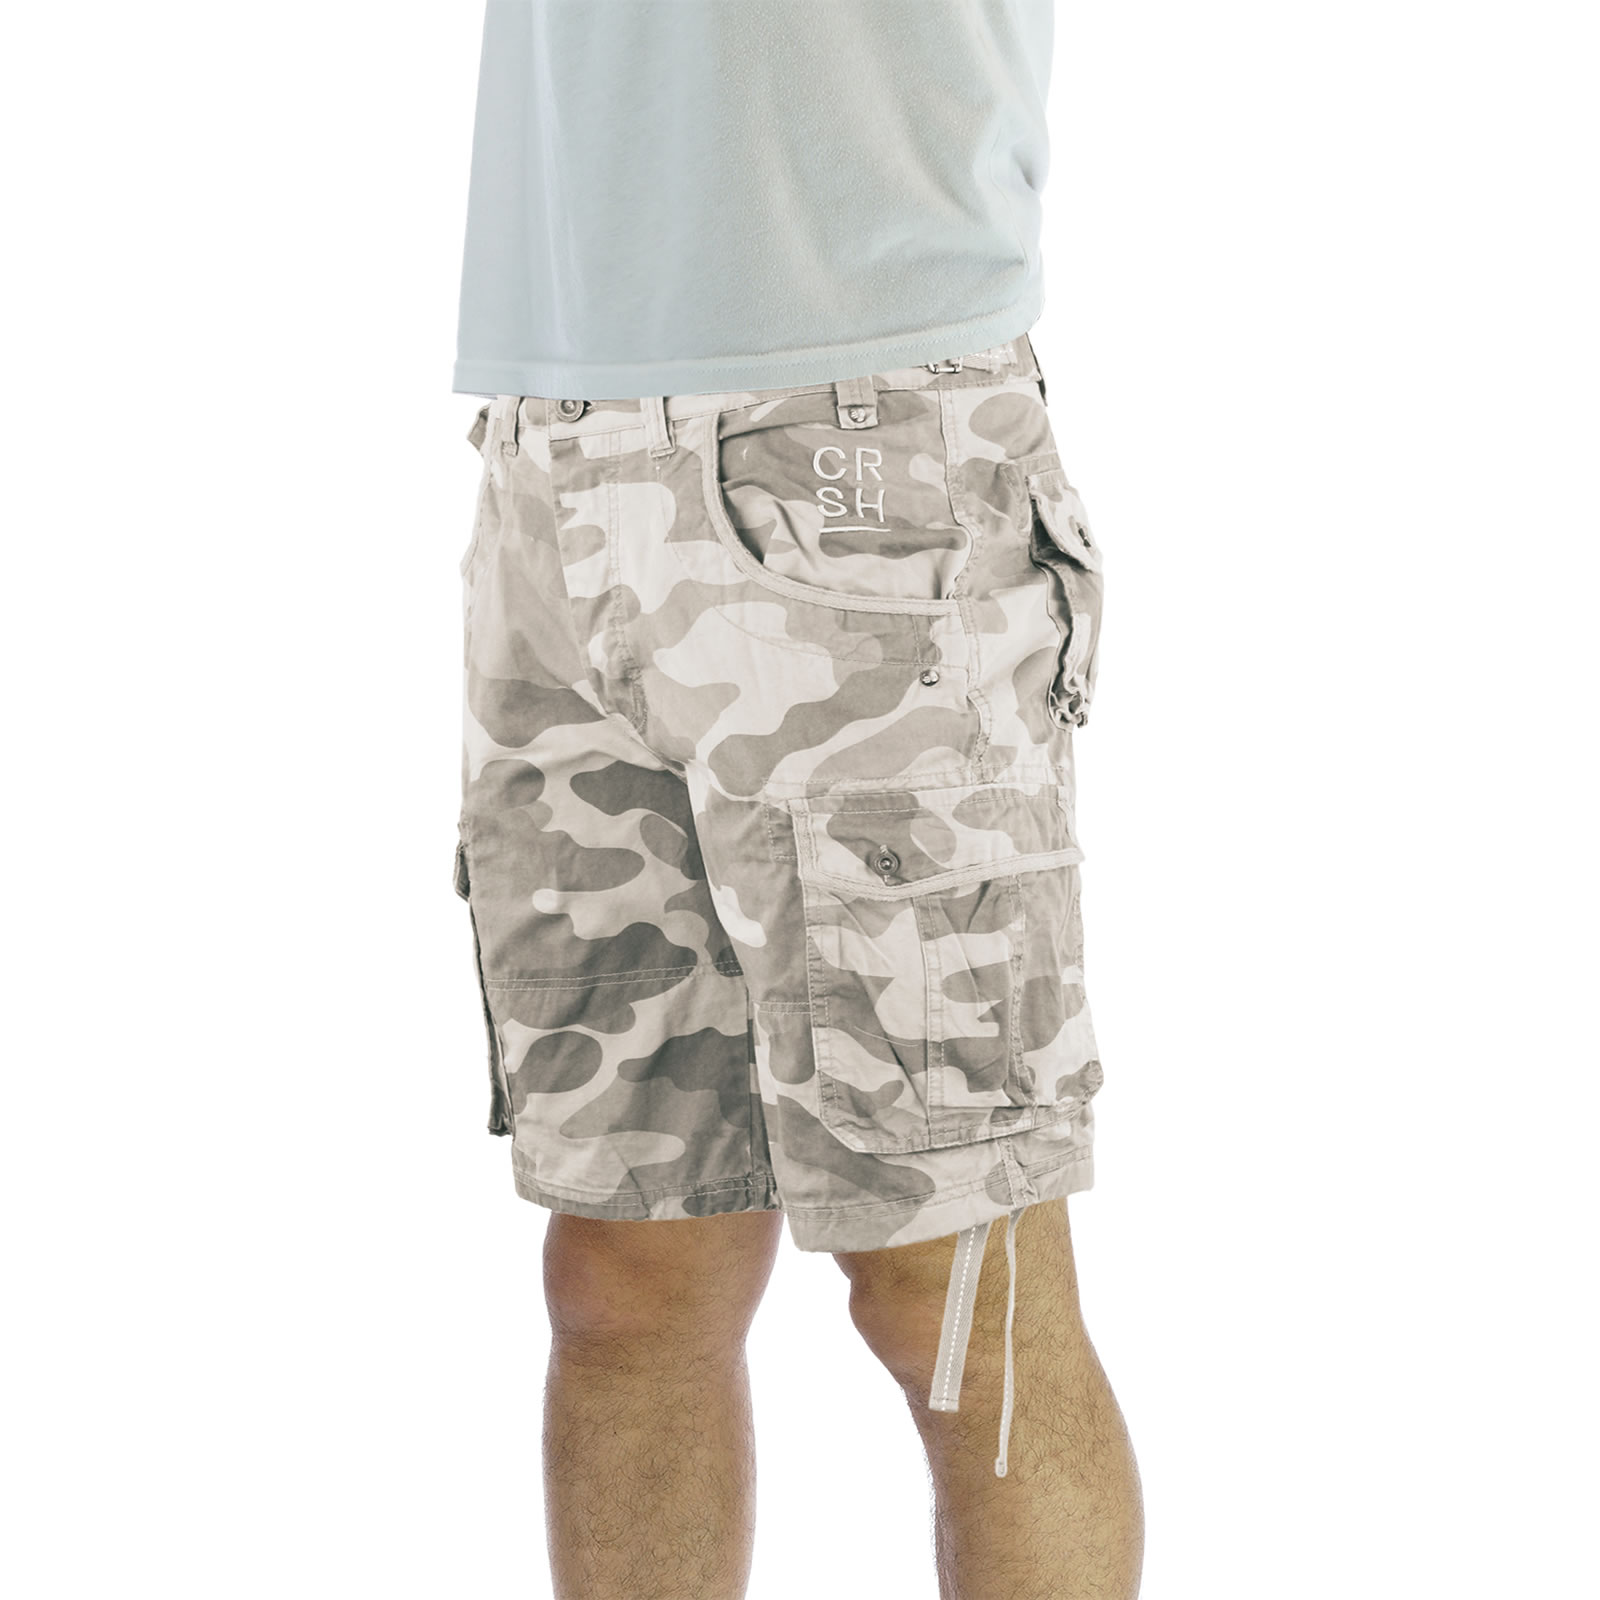 Hollister Classic Fit Cargo Shorts ($16) liked on Polyvore featuring men's fashion, men's clothing, men's shorts, olive, mens cargo shorts, mens camo cargo shorts, mens camouflage cargo shorts, mens camouflage shorts and mens camo shorts.